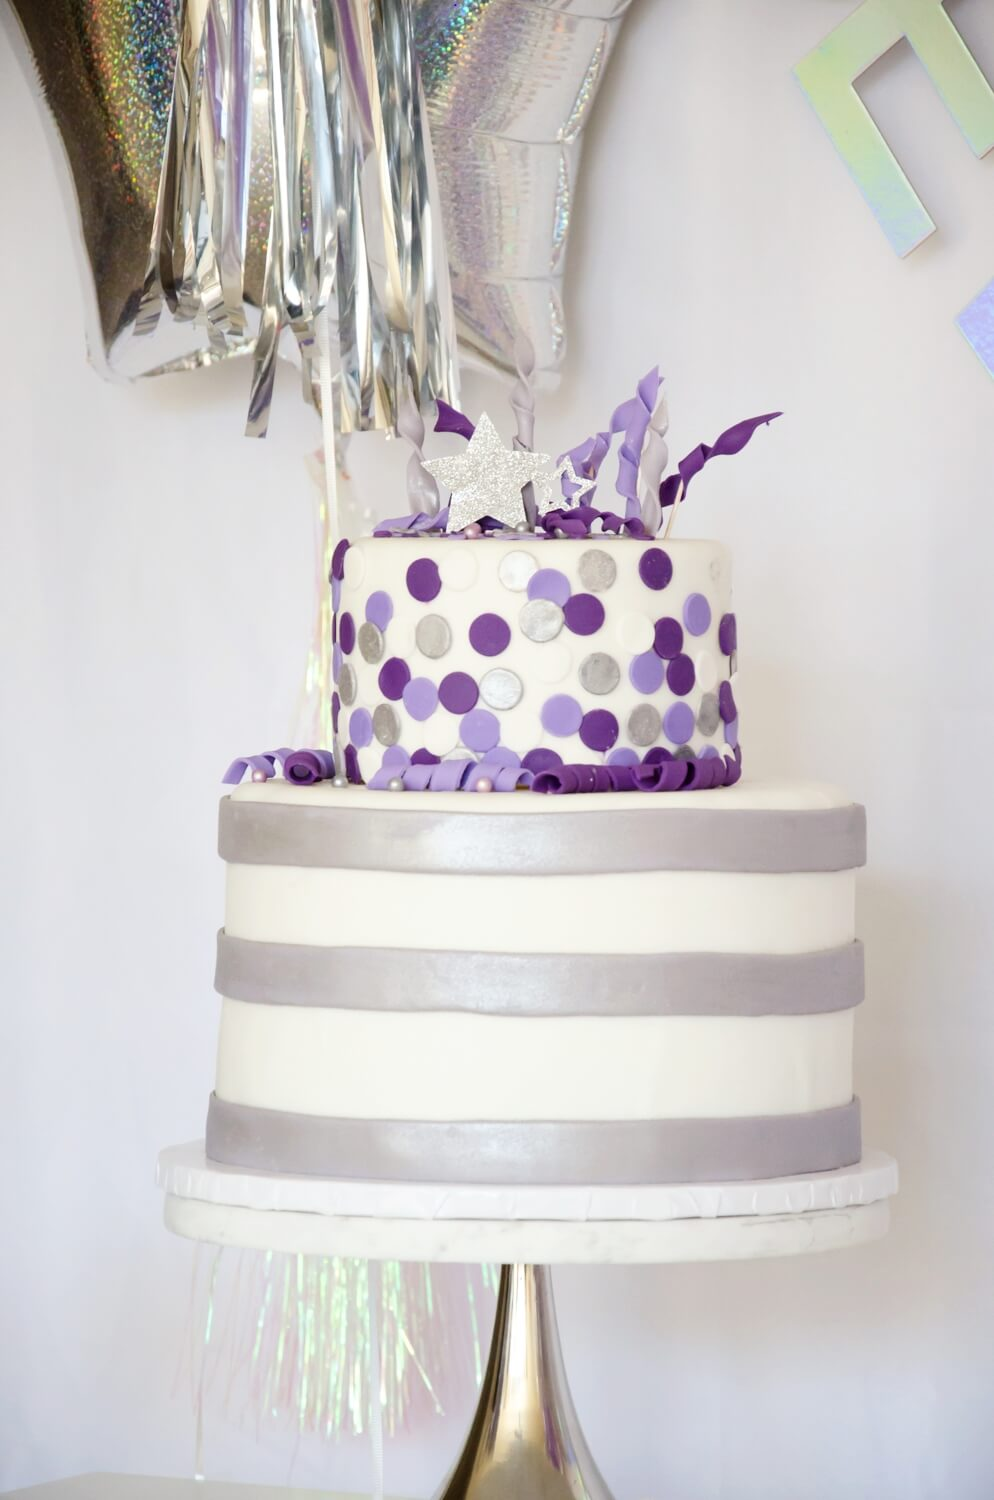 New Years Cake idea with purple and gray colors, perfect for a rockstar party too!